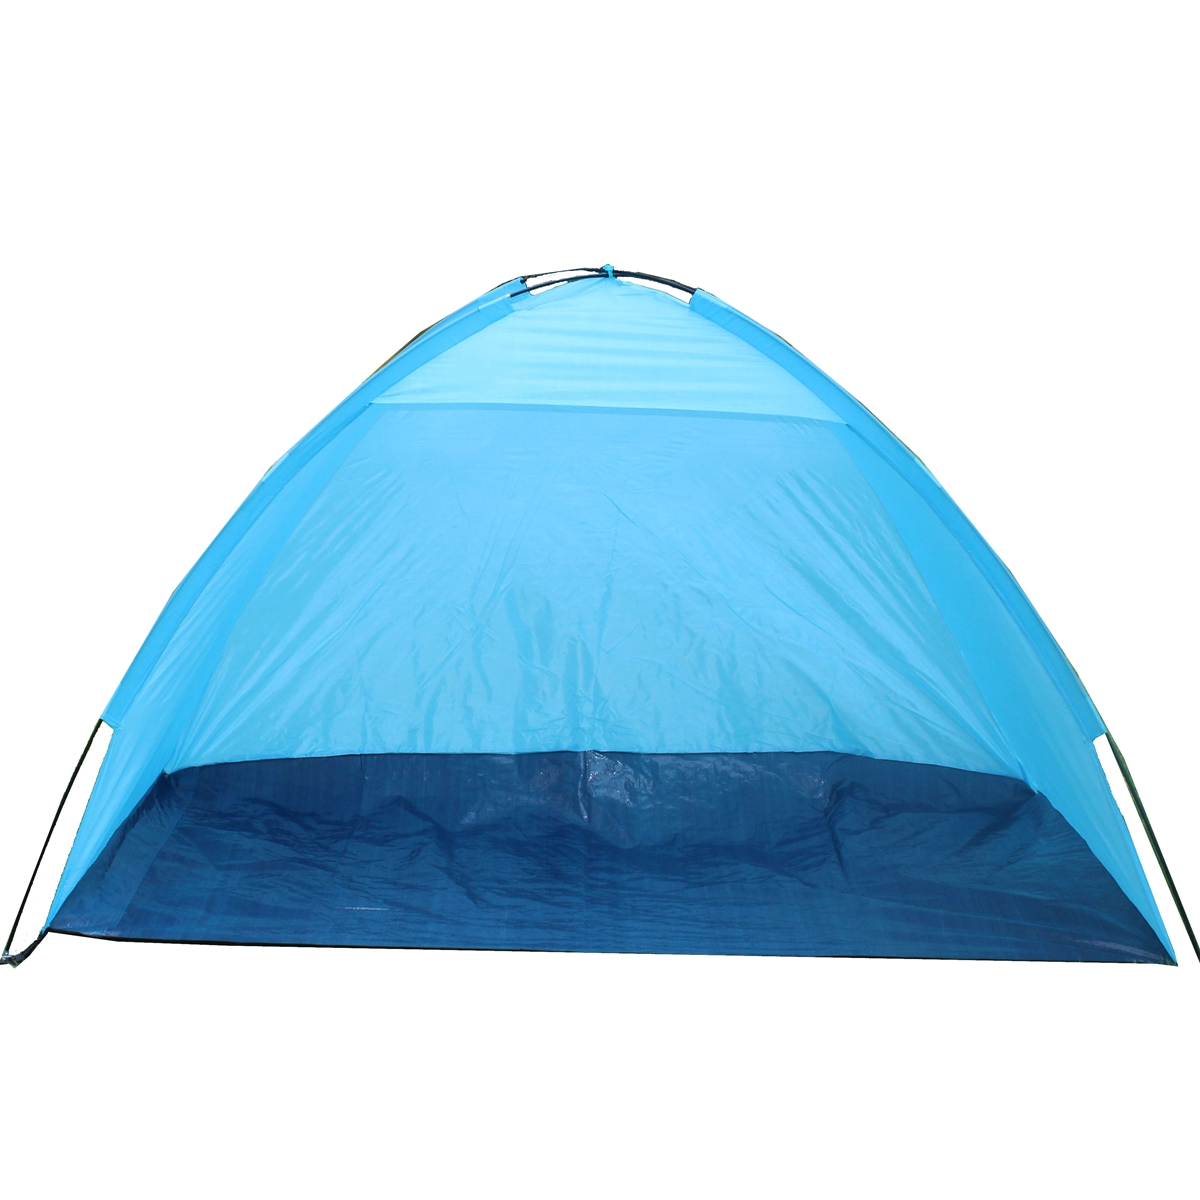 Outdoor 1-2 Person Camping Tent Single Layer Waterproof UV Beach Sunshade Canopy